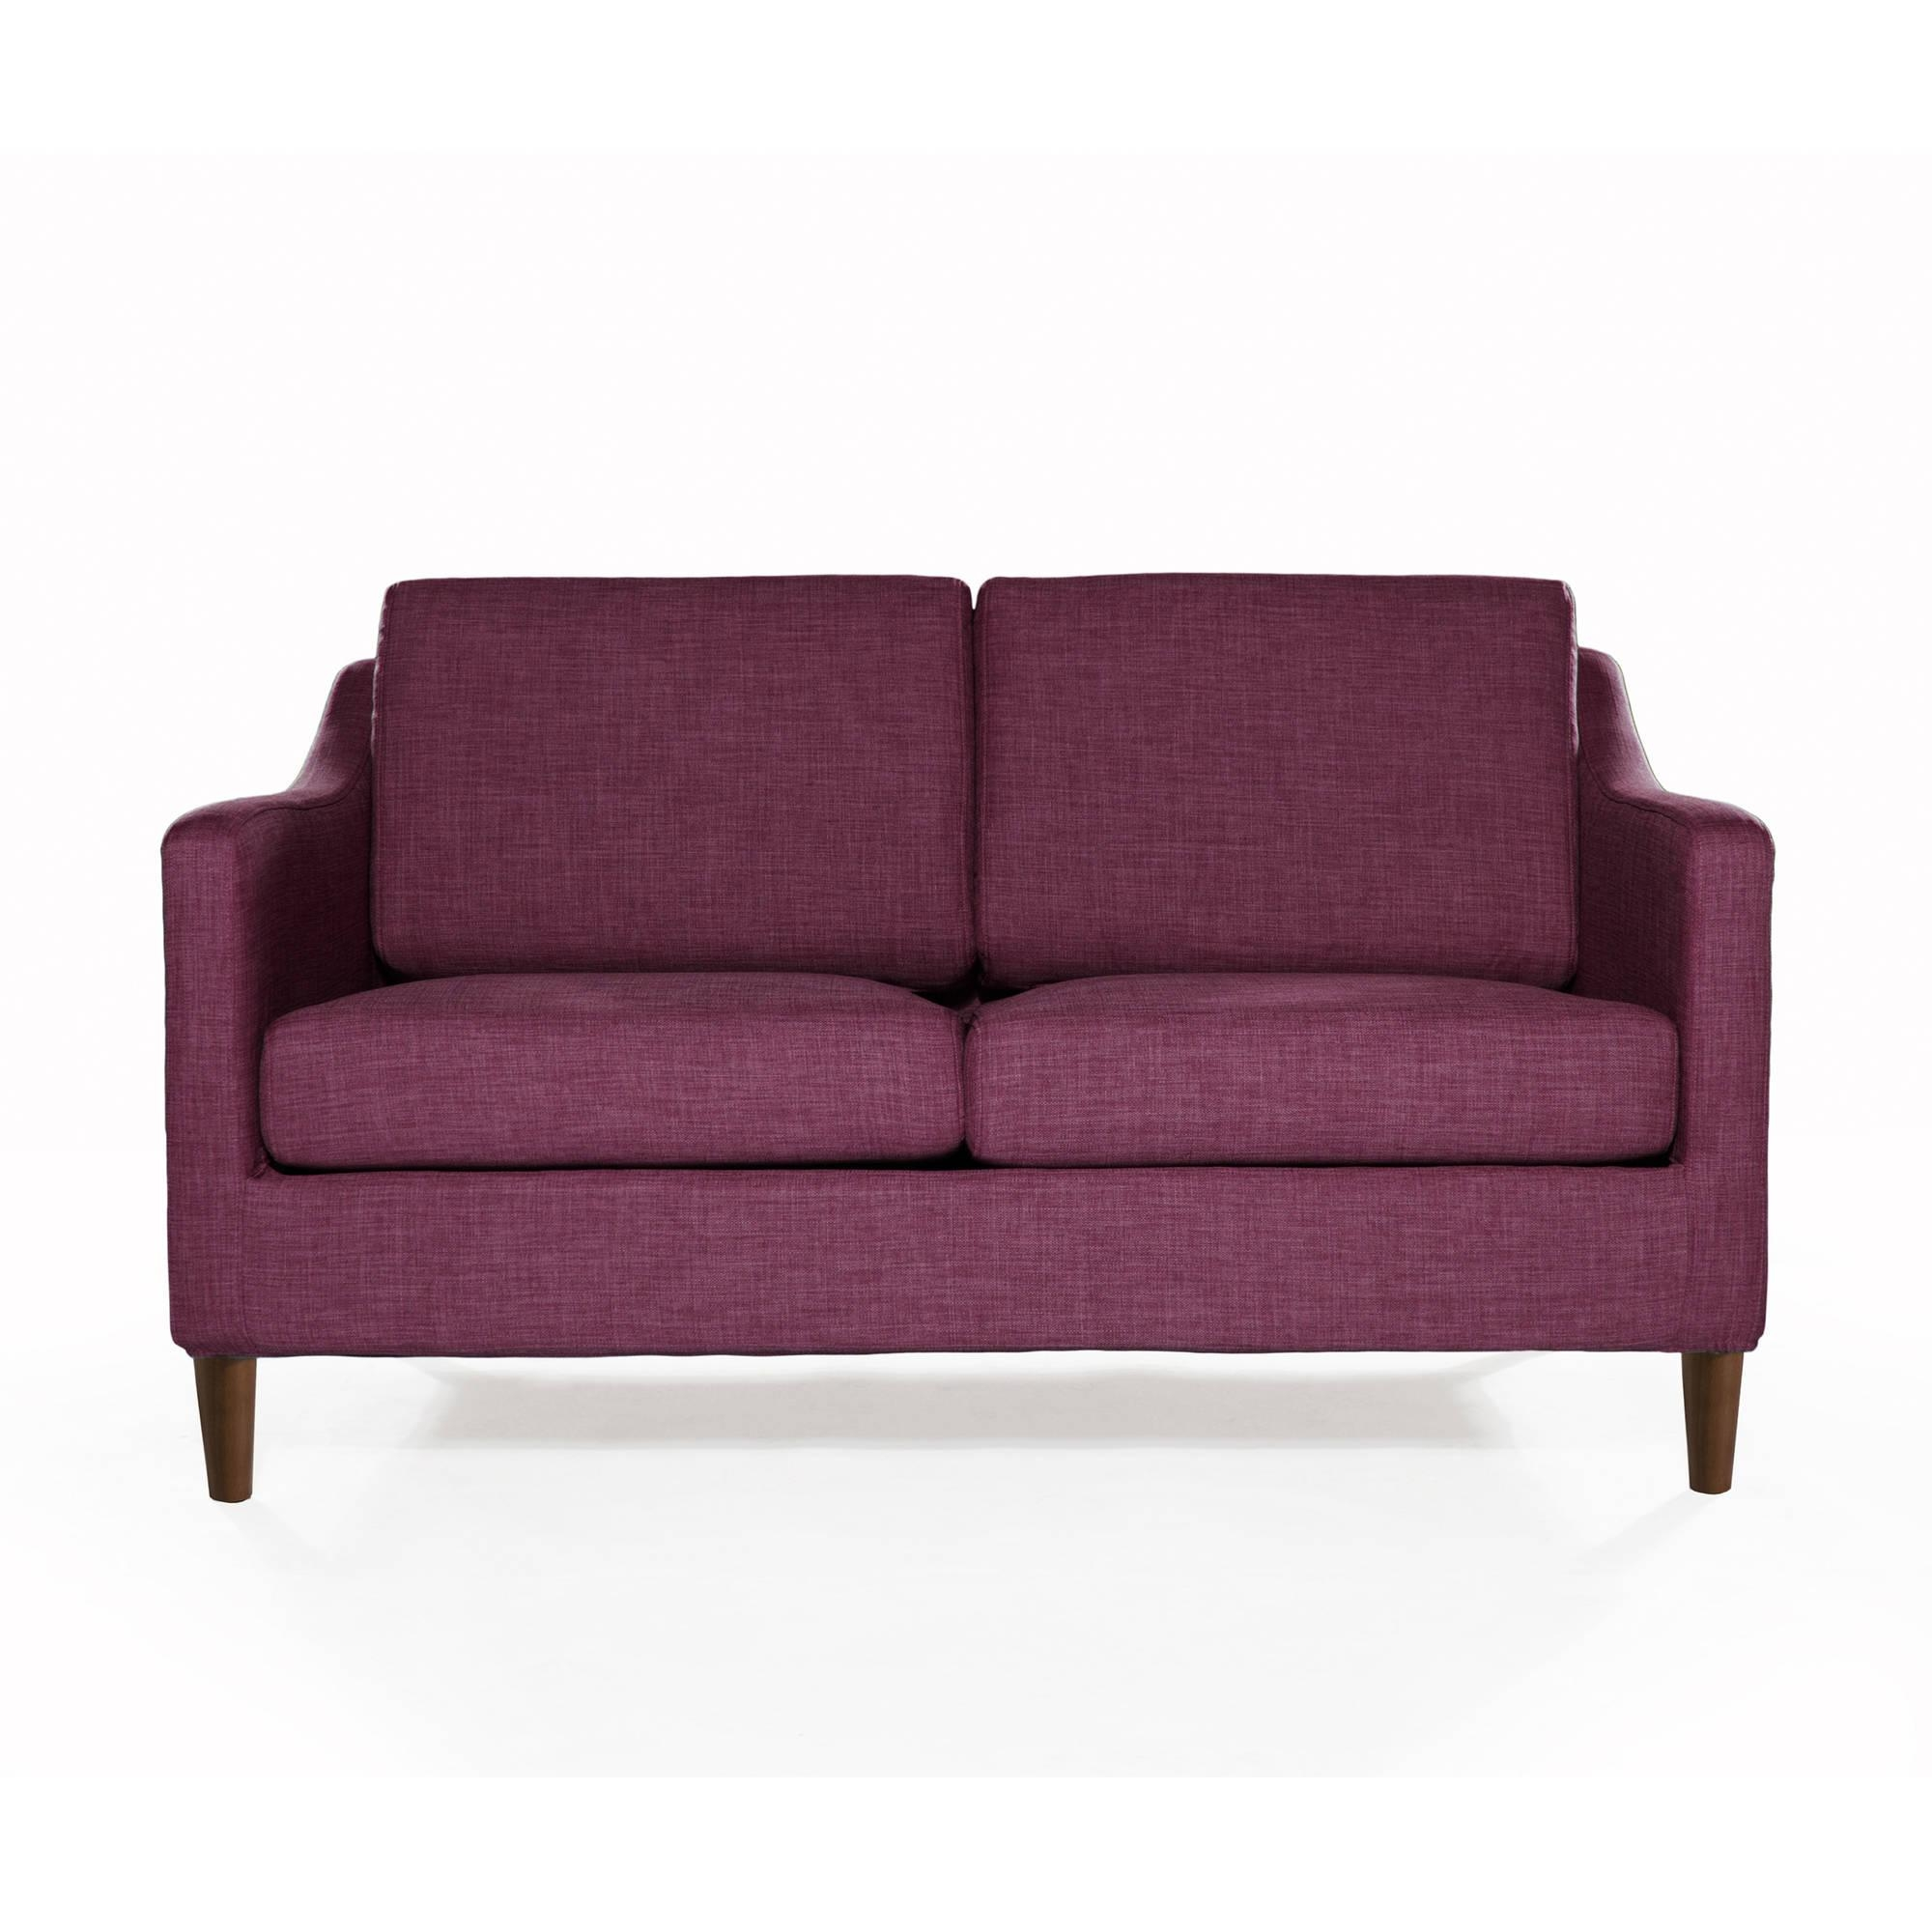 Sectional Sofas And Sectional Couches – Walmart Throughout Sectinal Sofas (Photo 14 of 20)